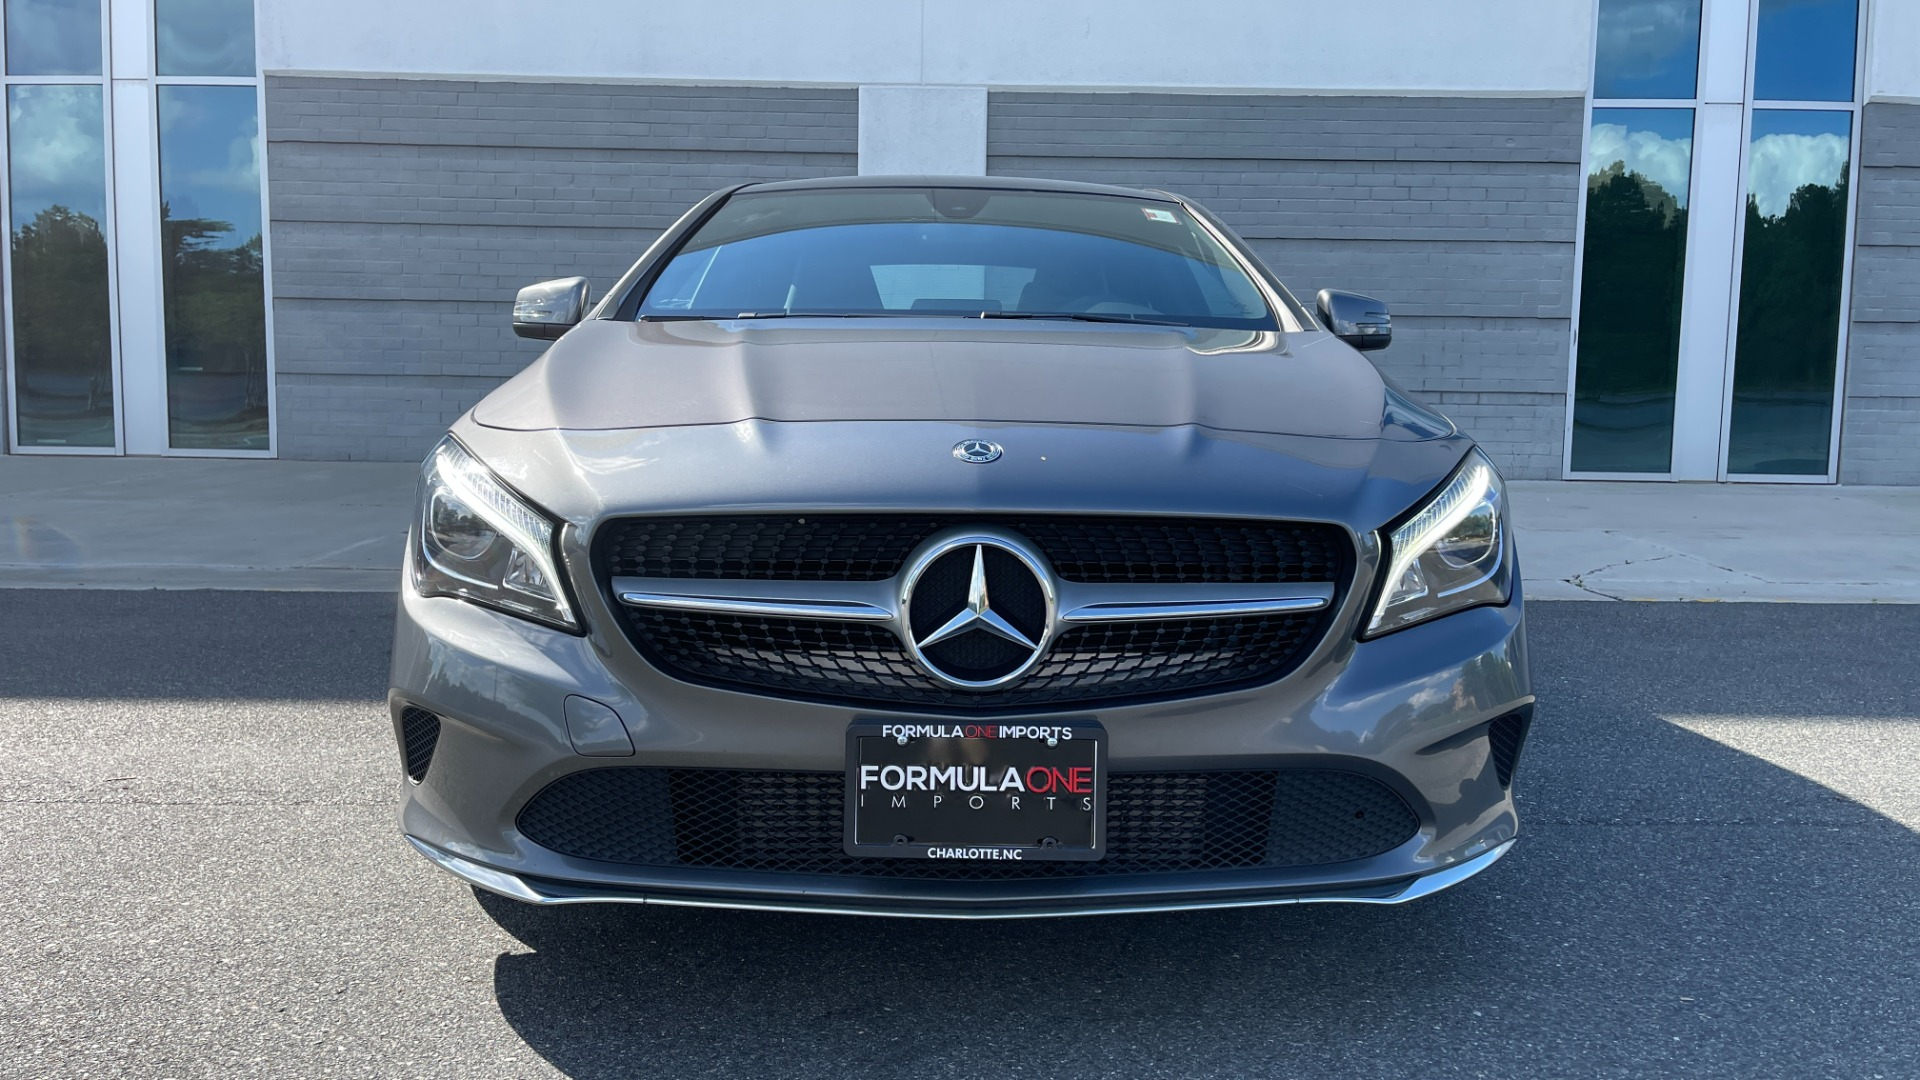 Used 2019 Mercedes-Benz CLA 250 4MATIC PREM & CONV PKG / APPLE / PANO-ROOF / H/K SND / REARVIEW for sale $29,795 at Formula Imports in Charlotte NC 28227 13